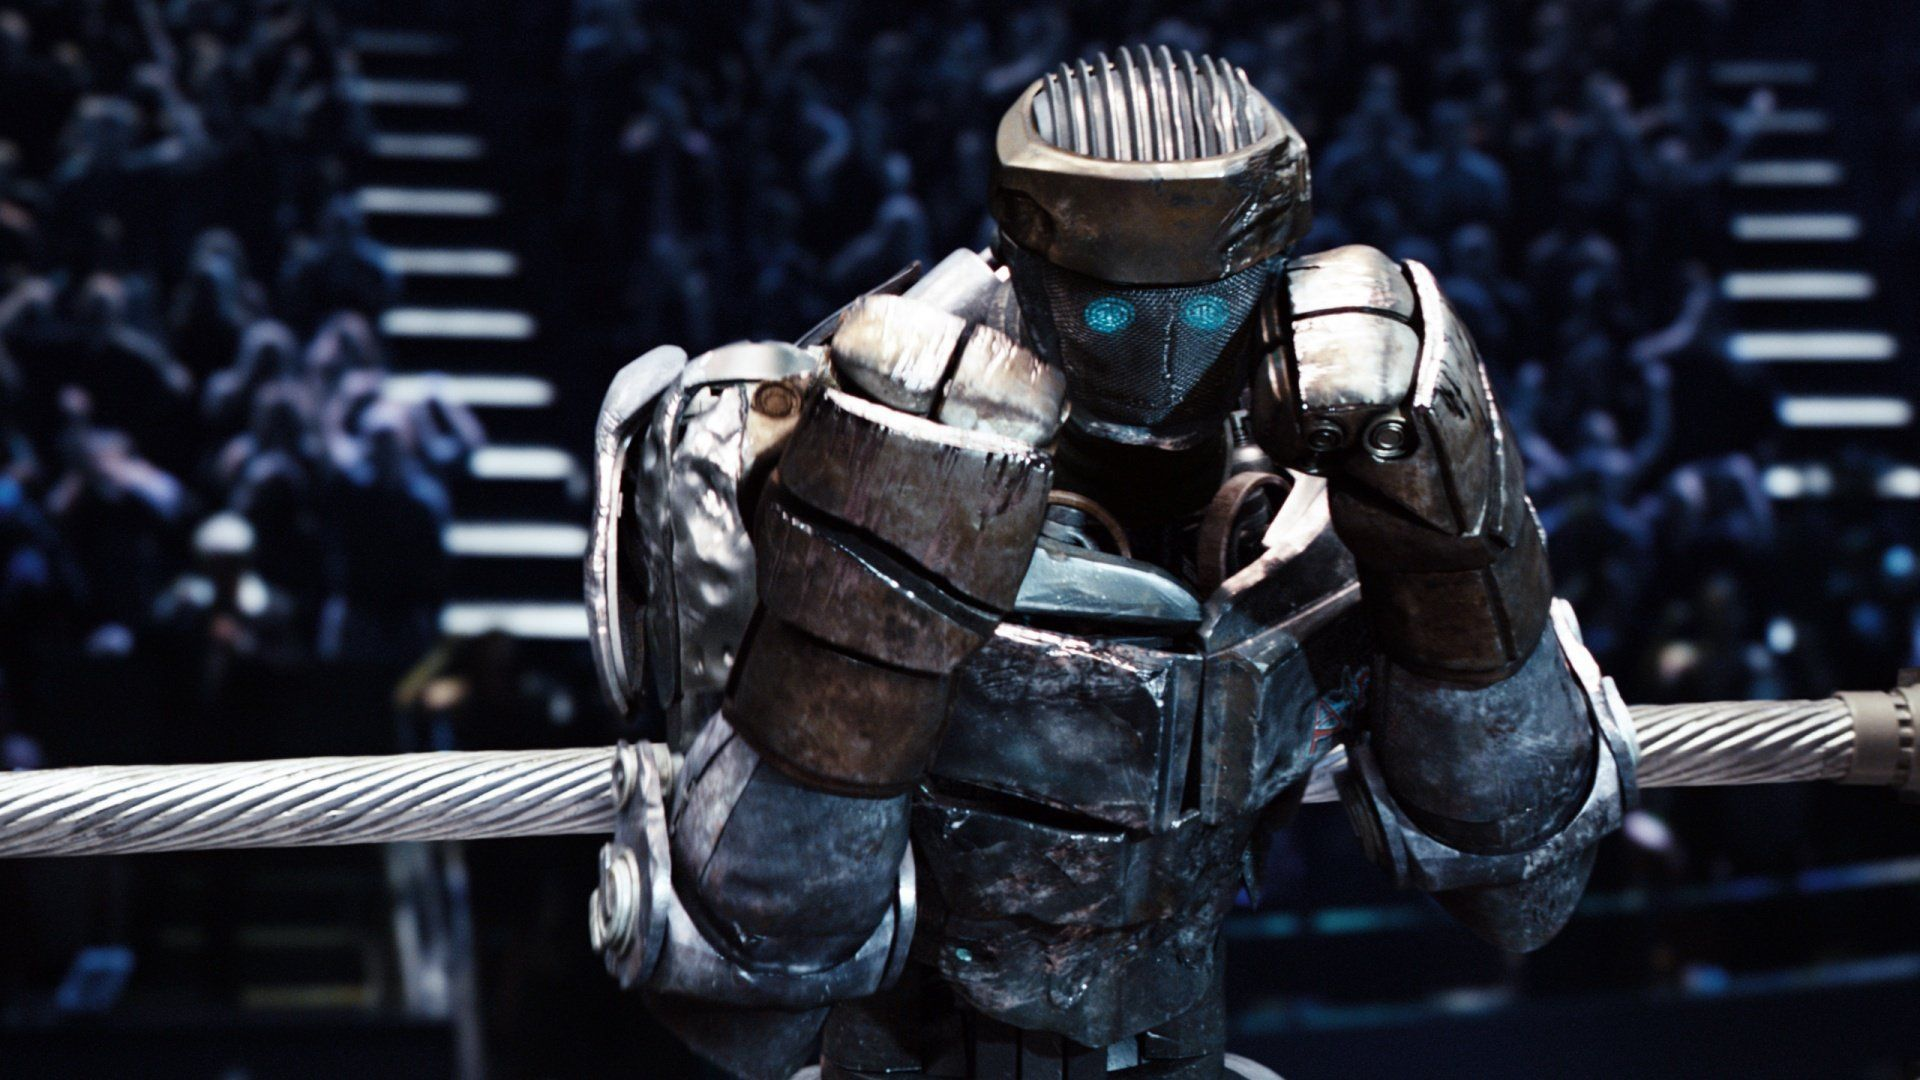 Resultado De Imagen Para Fondos De Pantalla Para Pc Real Steel Boxing Images Movie Wallpapers